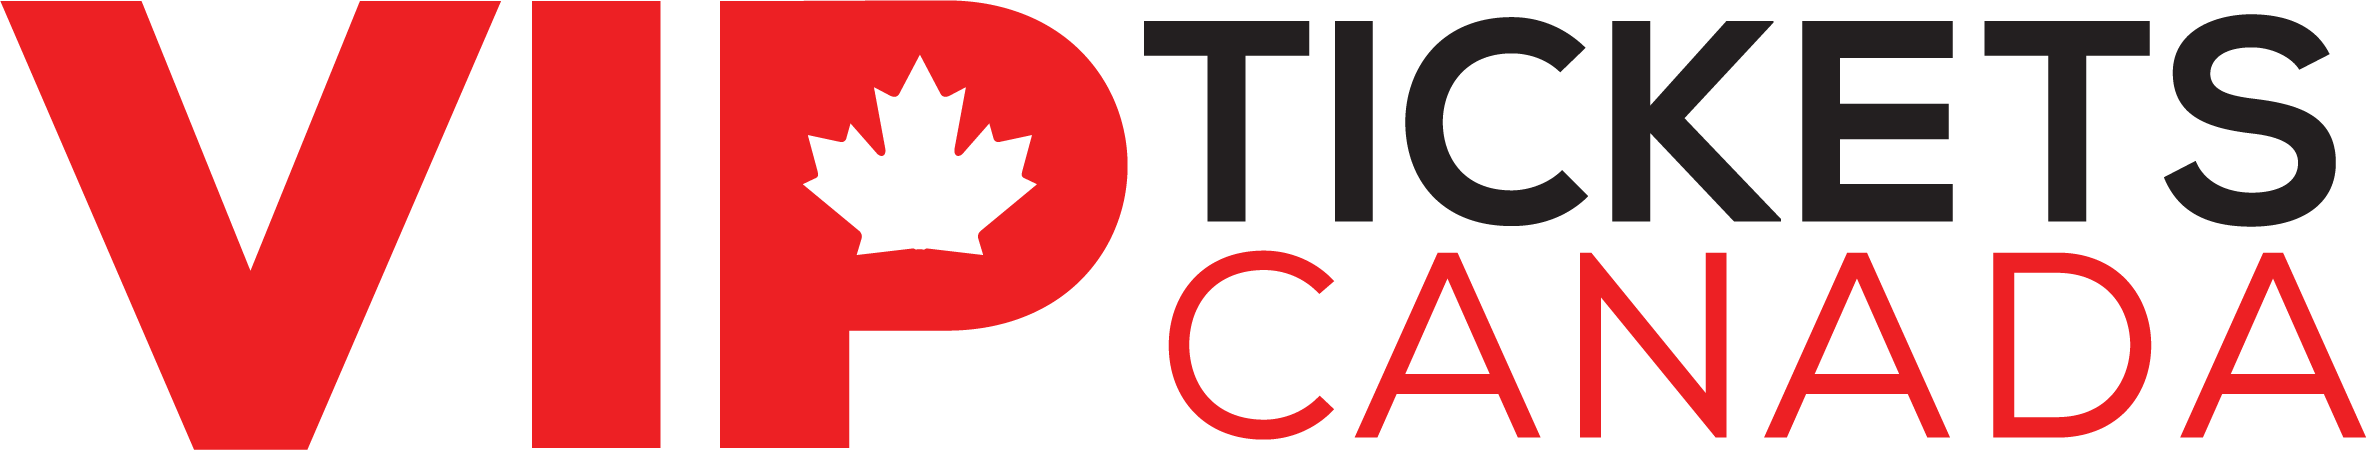 VIP Tickets Canada South Africa Coupon Codes